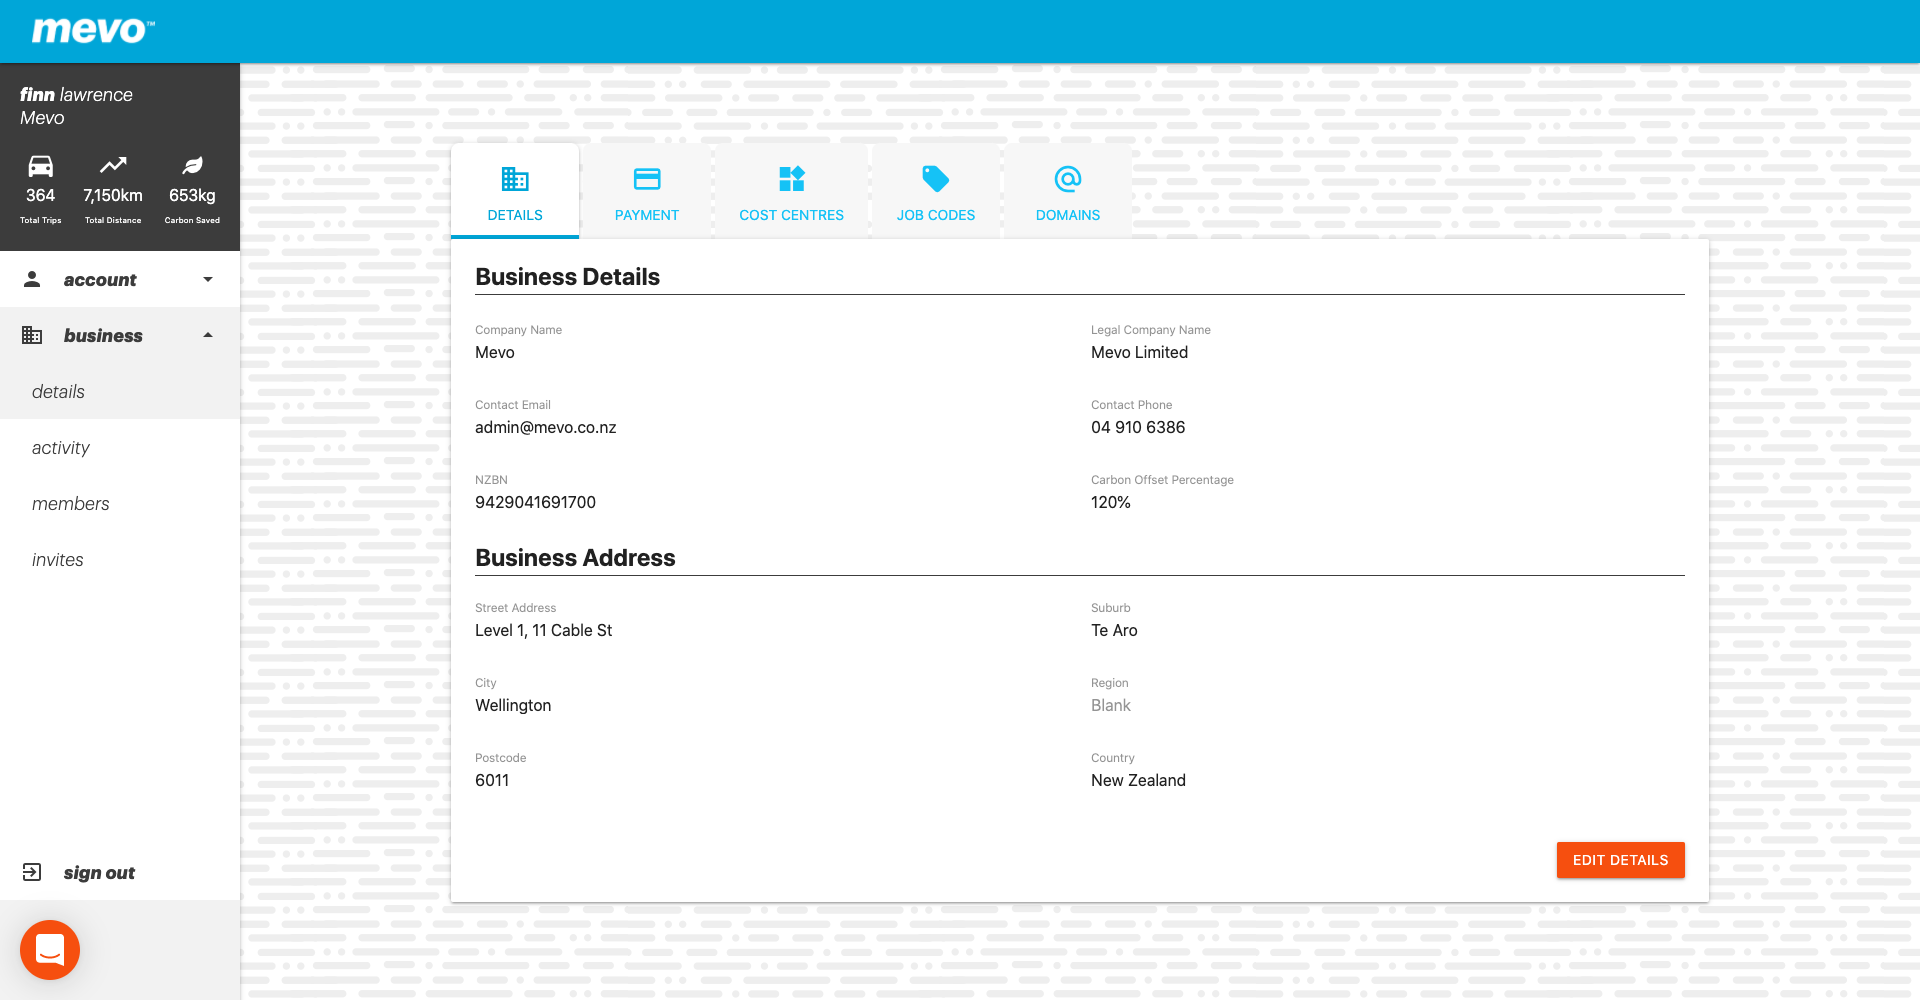 A screenshot of the Mevo for Business console showing a the company details and a button to edit them